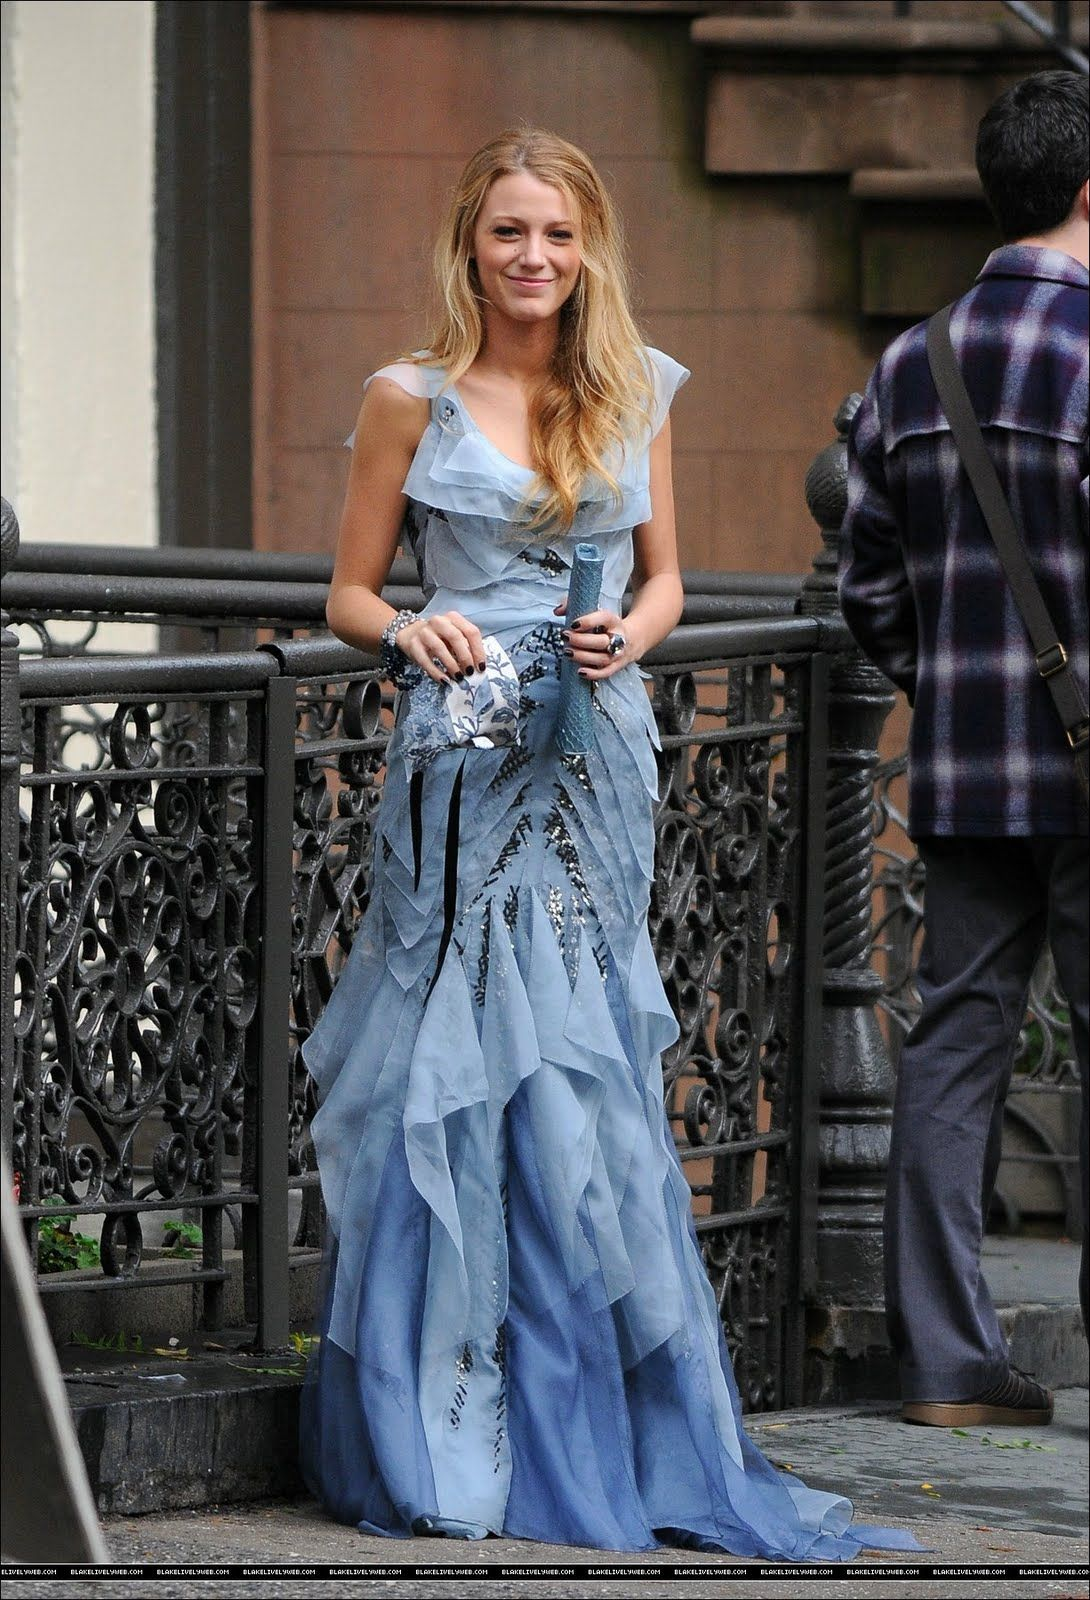 955577e8d2ab Dress from episode of Gossip Girl. LOVE IT.